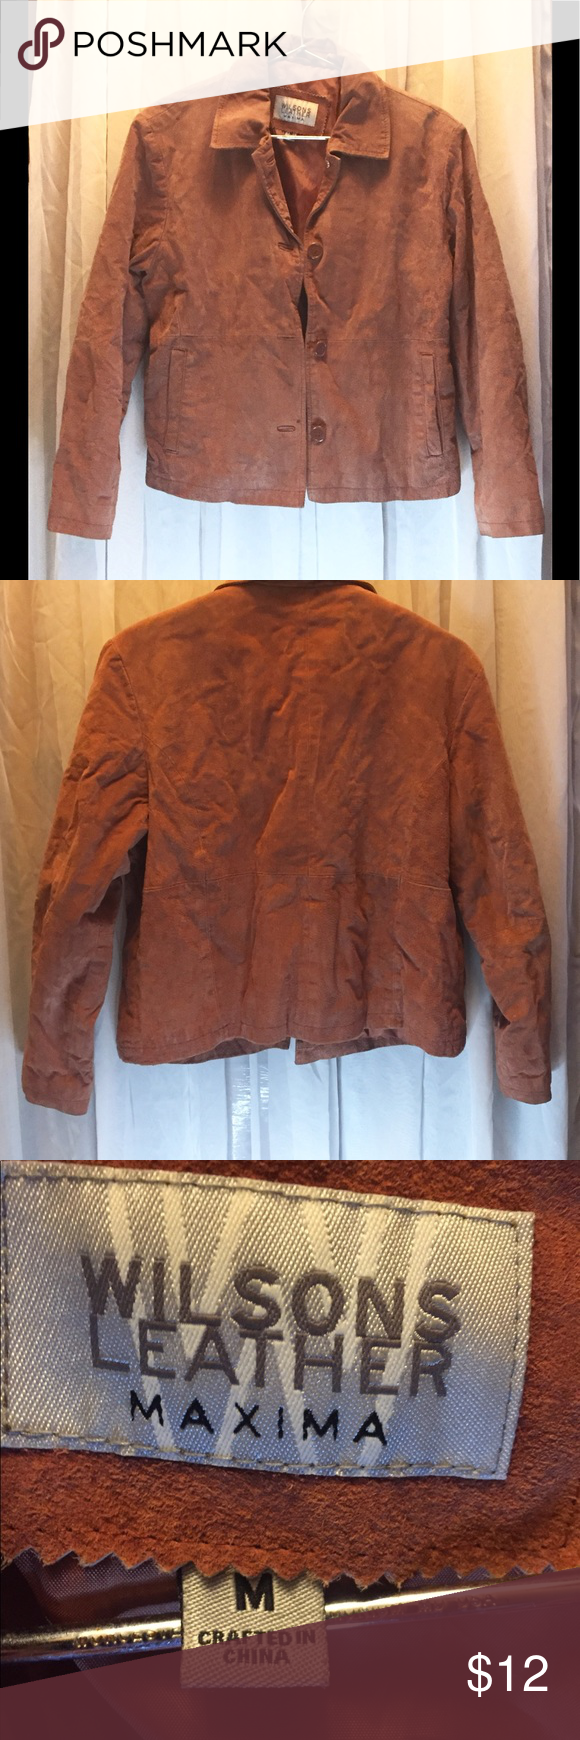 Wilson's Leather Maxima Suede Jacket (M) in 2020 Wilsons